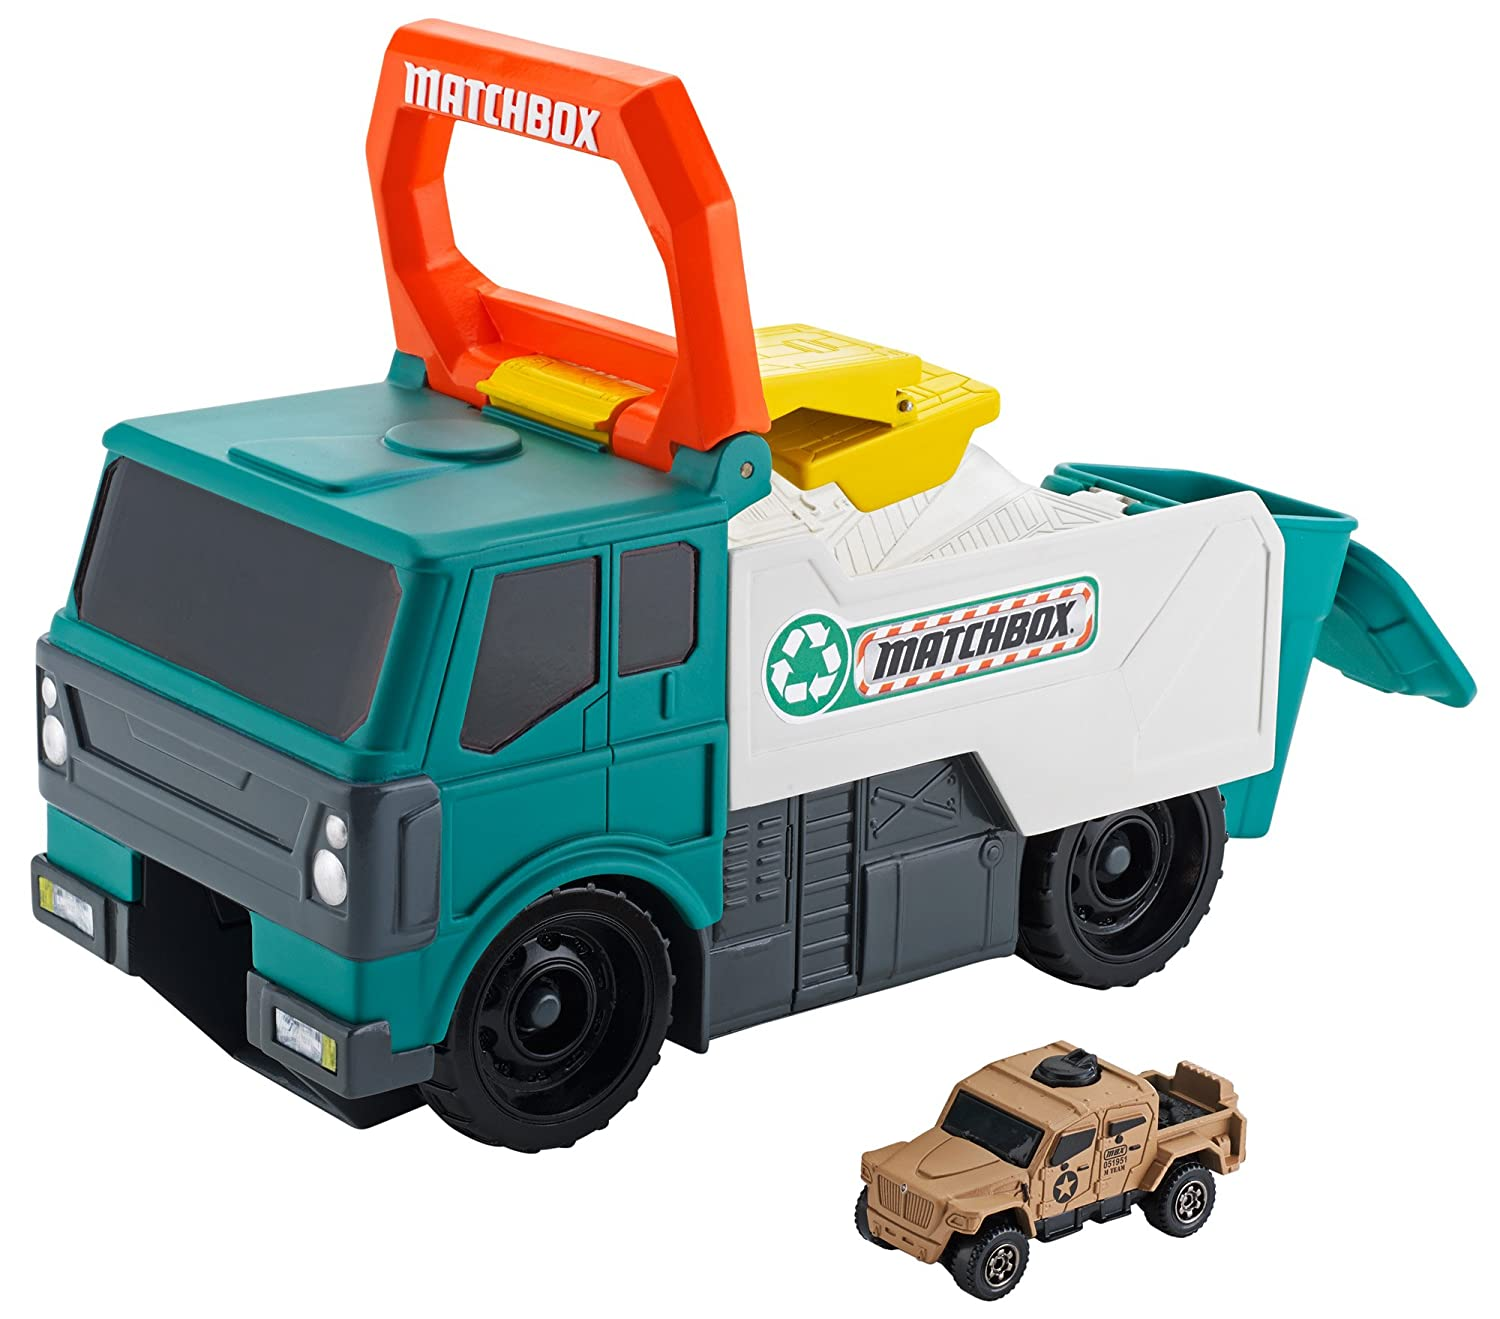 Amazon.com: Matchbox Power Launcher Garbage Truck: Toys & Games